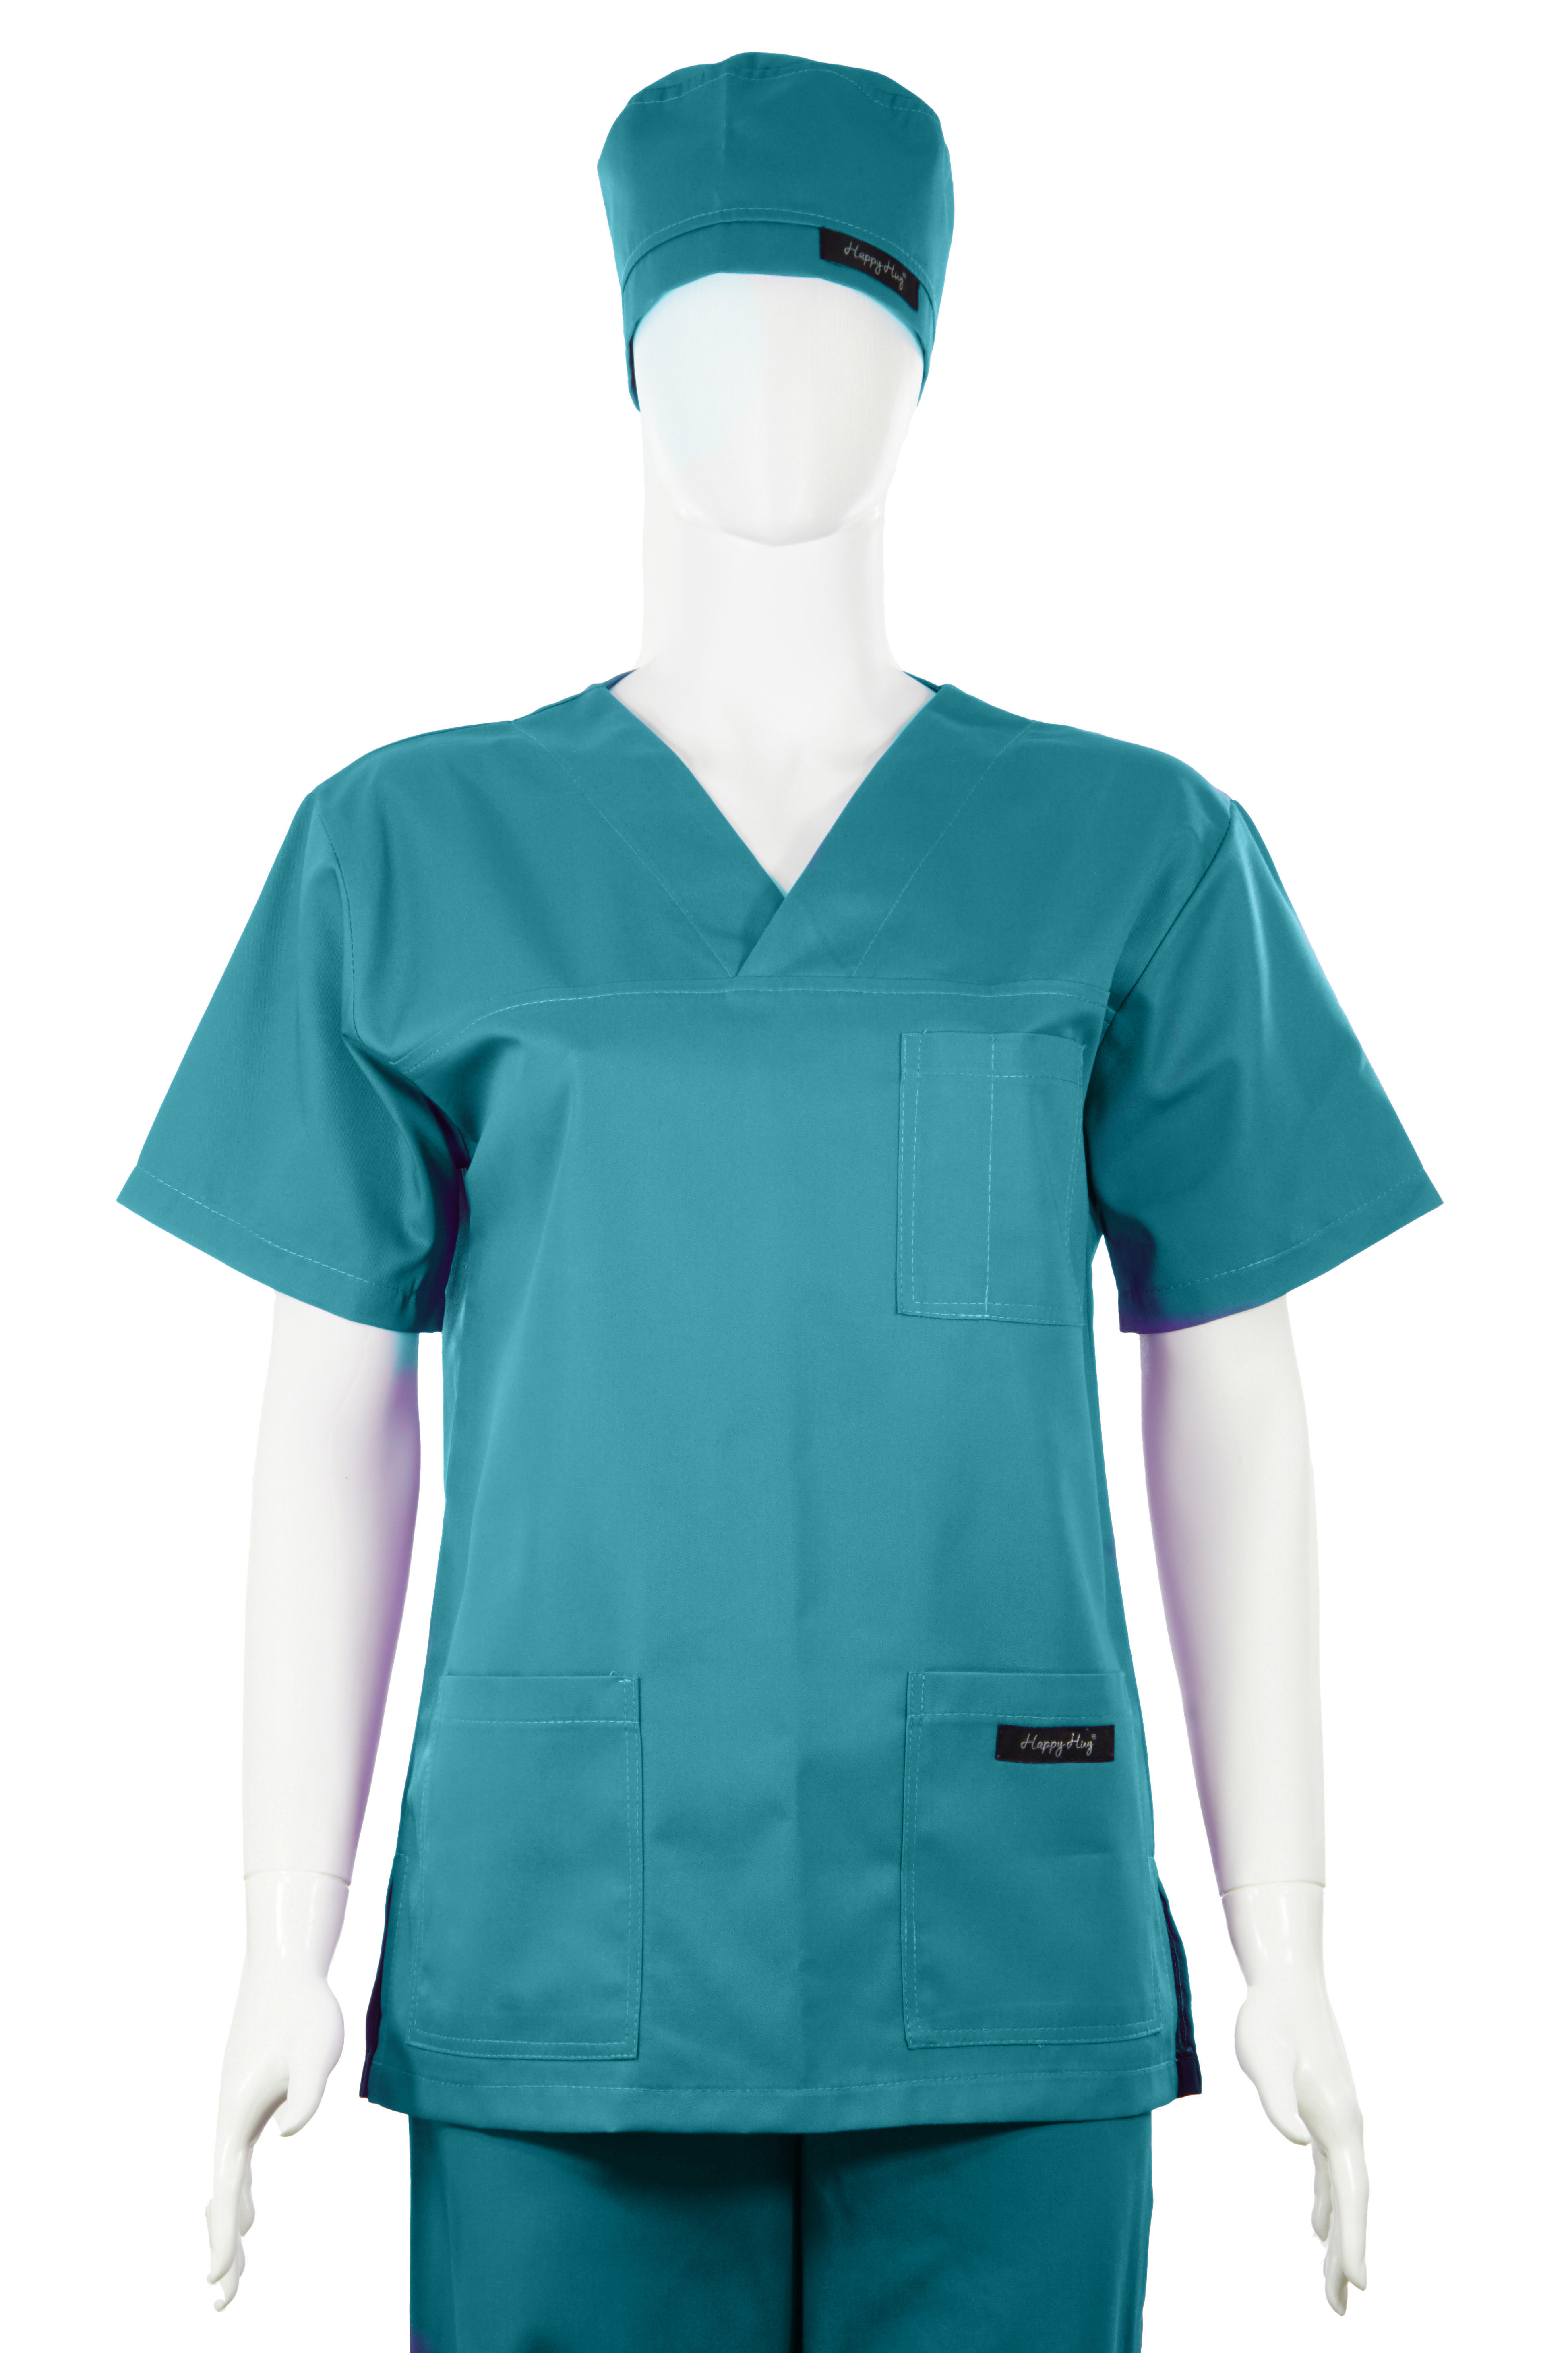 Costum Medical Unisex teal 2XL 2XL 0